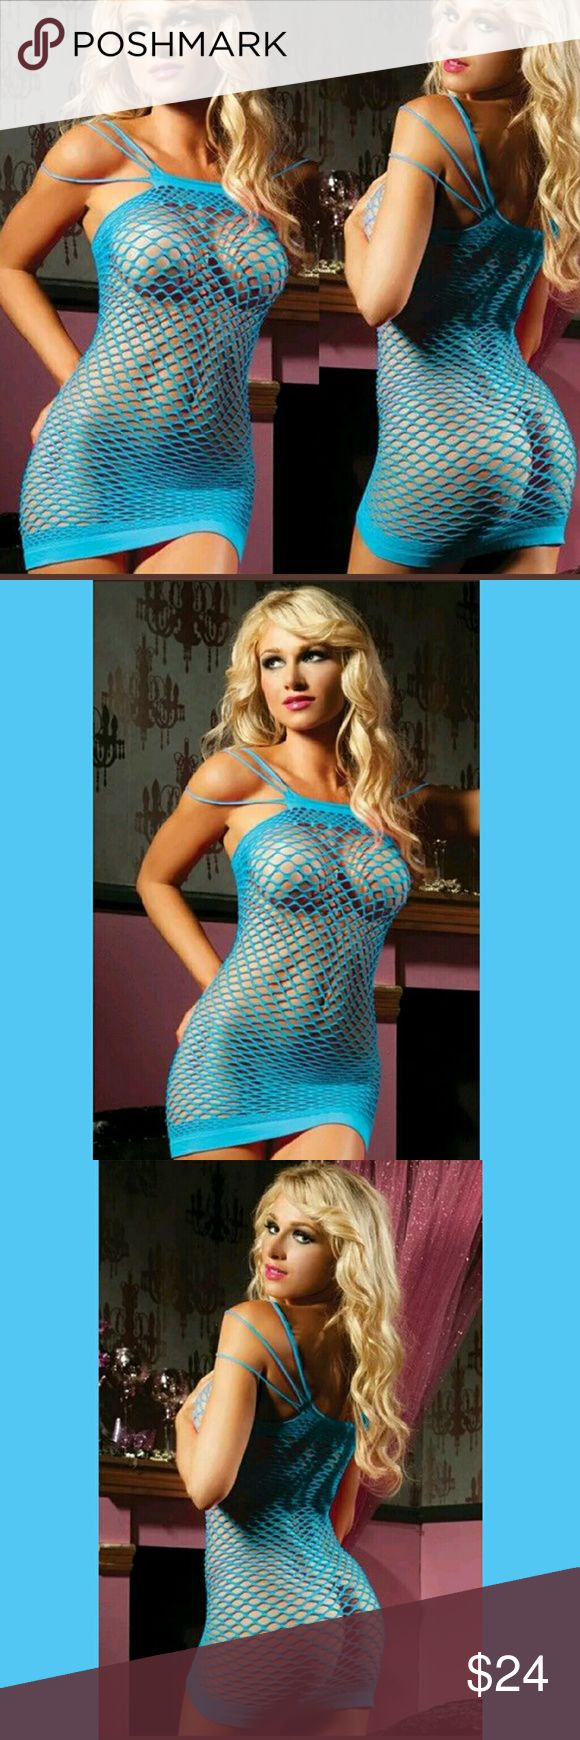 "Eve's Temptation Sexy Fishnet Lingerie XS-XXL New in Package Super Stretchy, Soft as an old T-shirt, Blue and Sexy as it gets. See through and tantalizing. One Size Fits ALL, XS-XXL. 30"" Long unstretched. This will comfortably Stretch to most any size.  Soft Cotton/Spandex Blend   #168 Eve's Temptation  Intimates & Sleepwear"